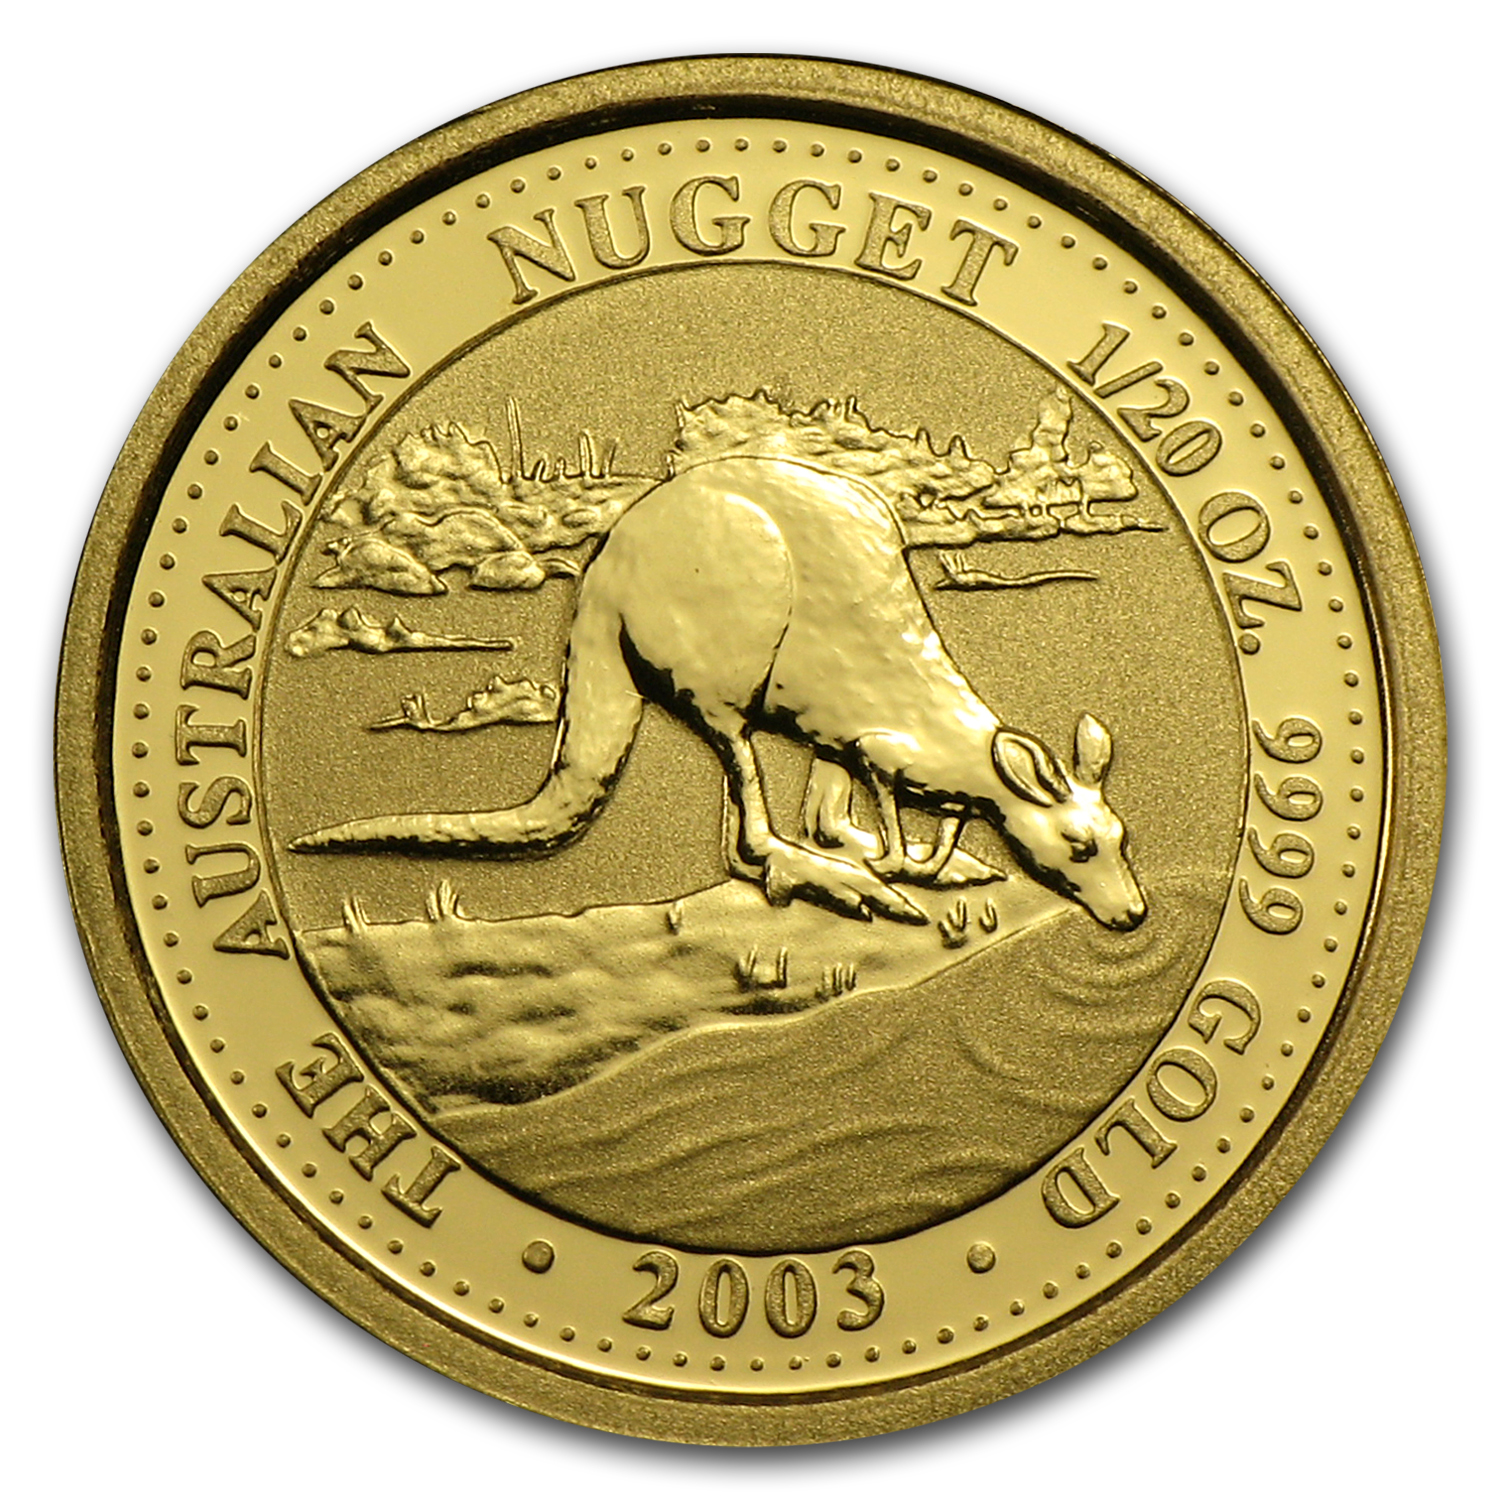 2003 Australia 1/20 oz Gold Nugget